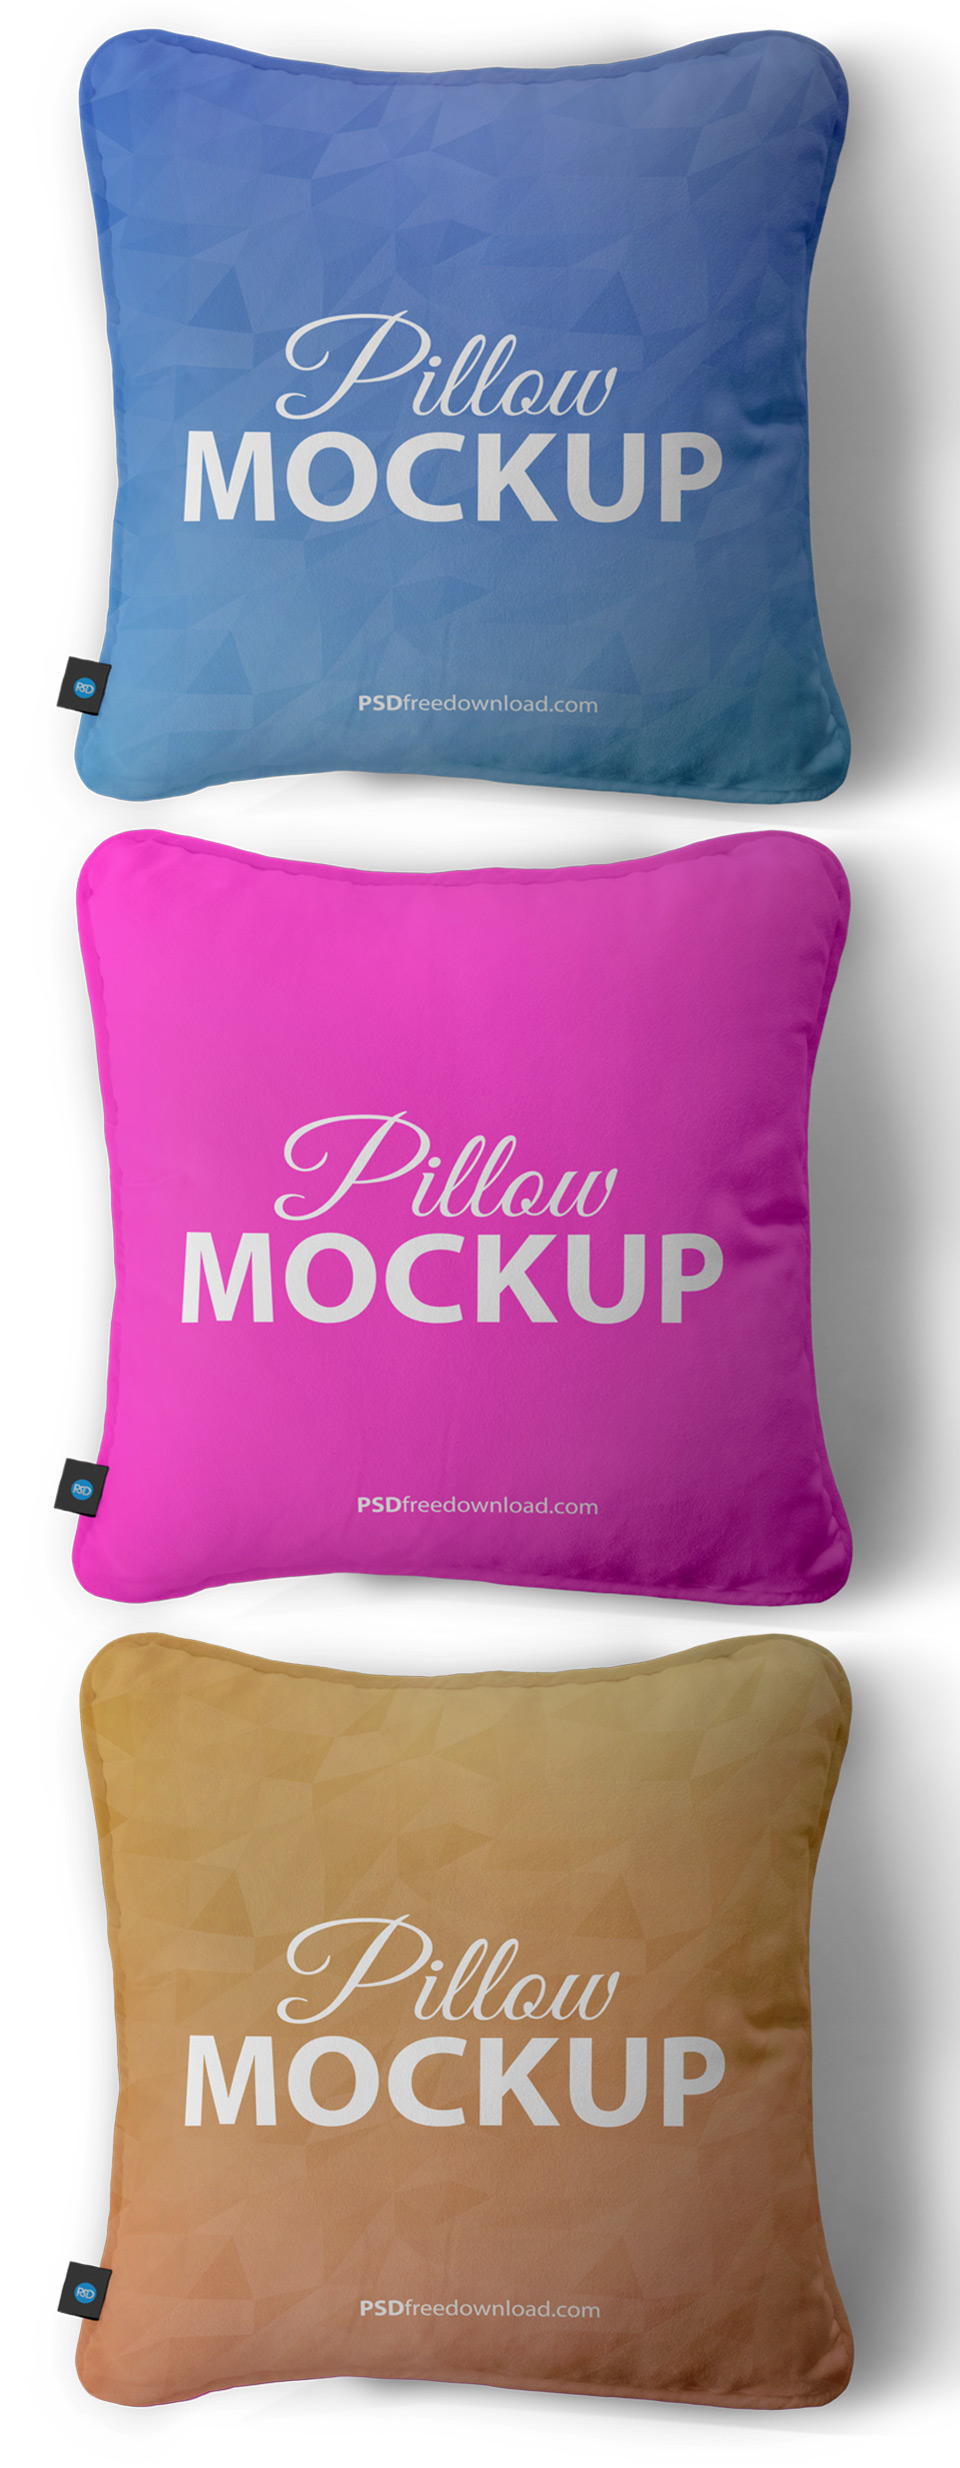 Background, cushion, deviantart, Download, downloadpsd, Free, freePSD, Graphic Pillow, Graphics, Latest Pillow, Layout, mockup, MockupPSD, pillow, pillow design, PillowCover, pillowpsd, PSD, PSDFreeDownload